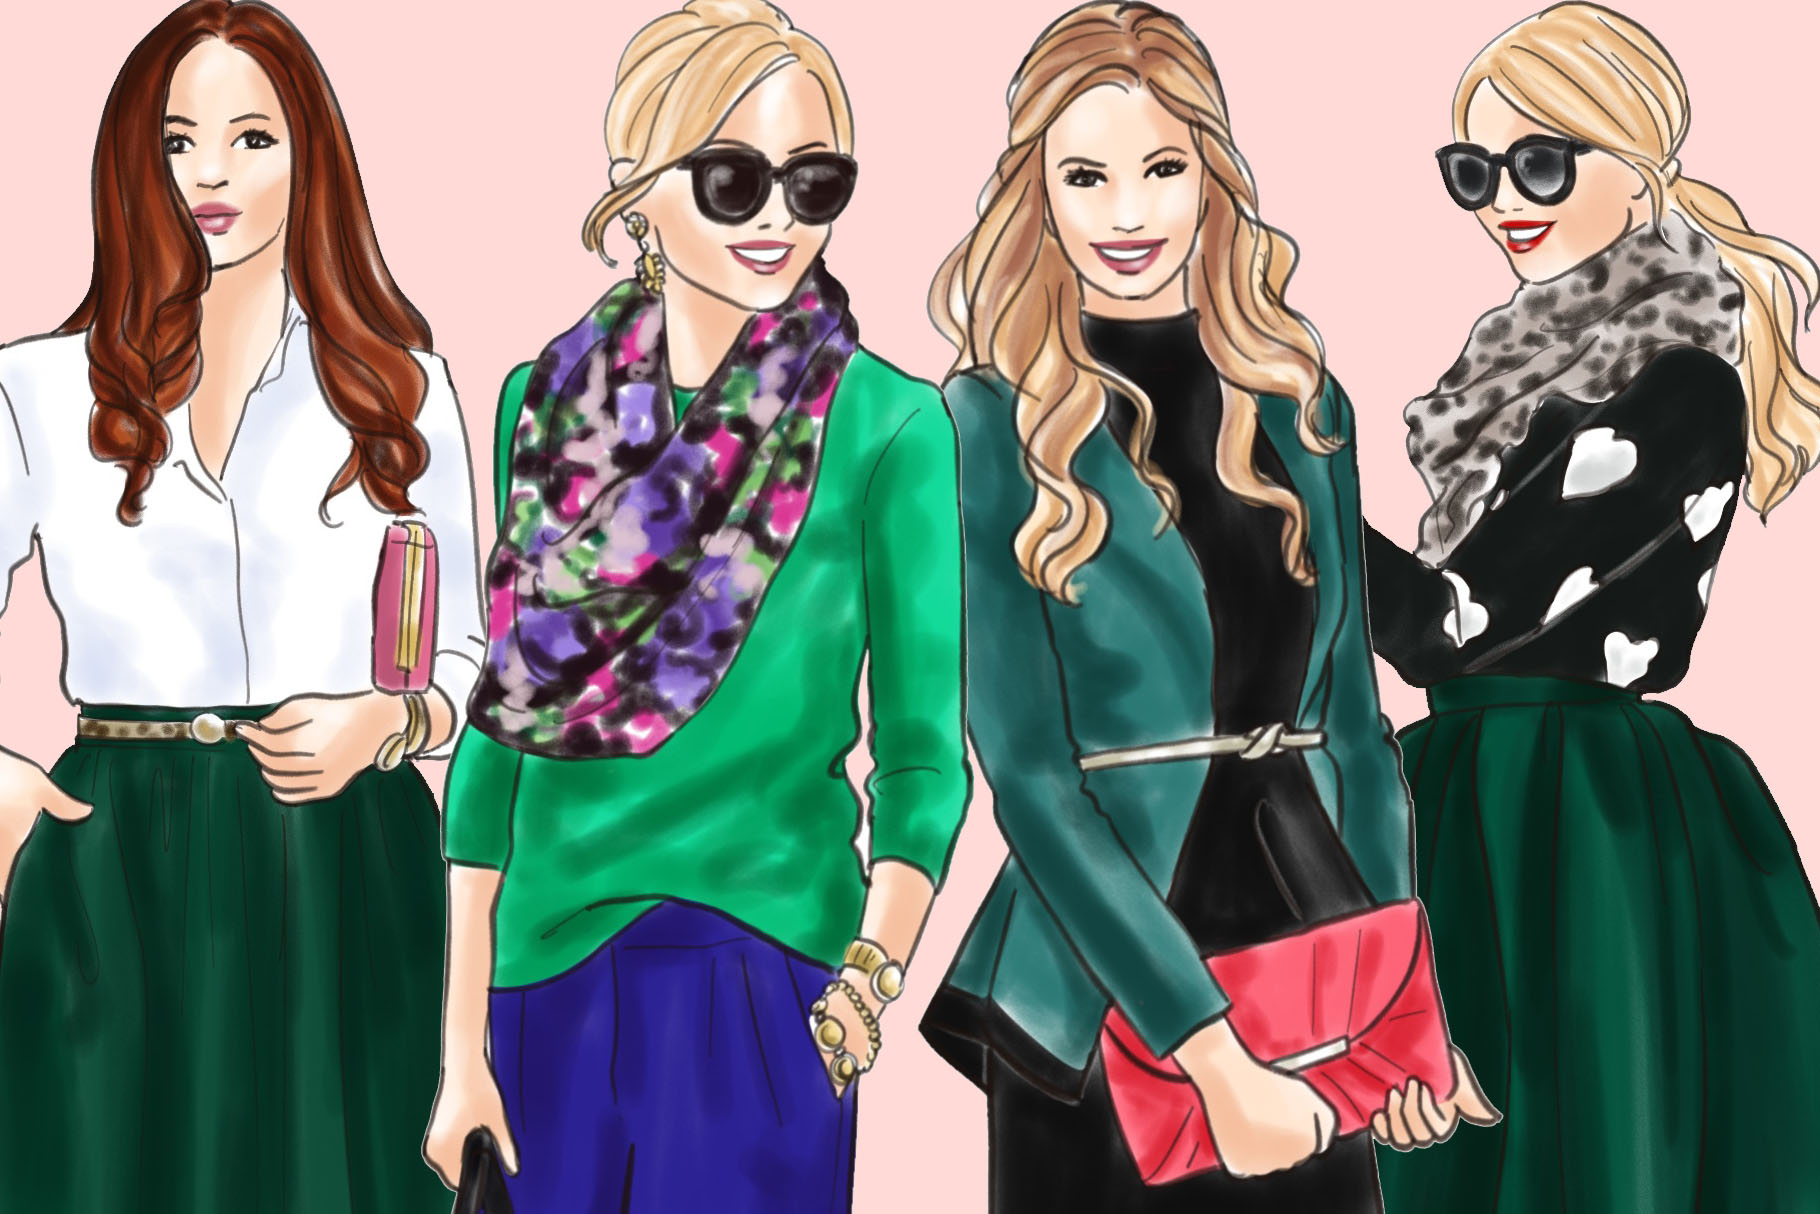 Fashion illustration clipart - Girls in Green 2 - Light Skin example image 3